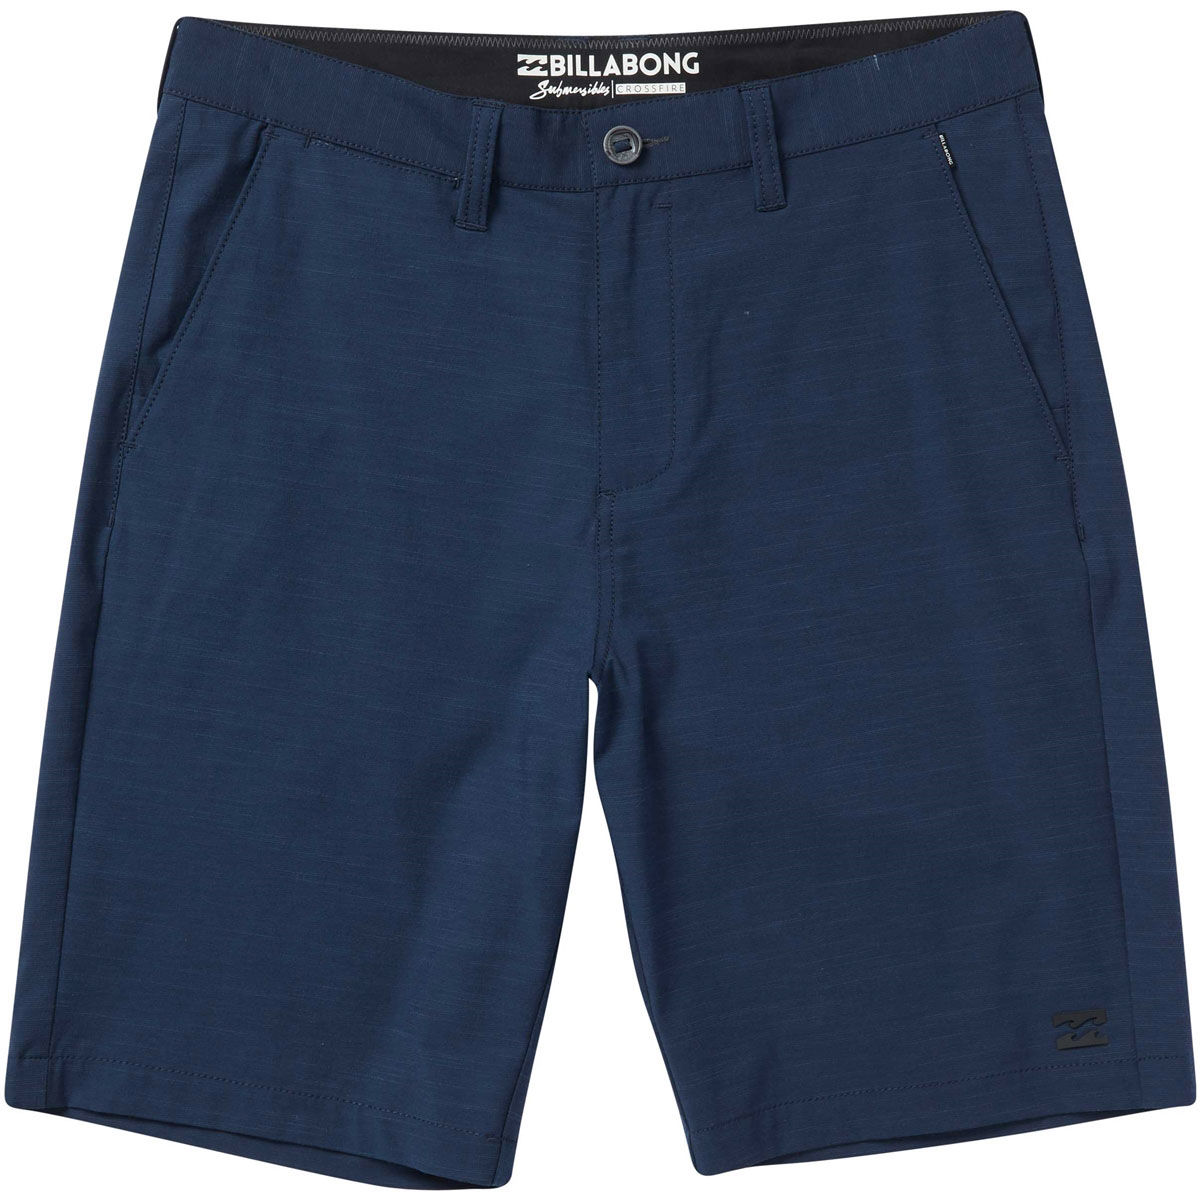 Billabong Guys' Crossfire X Slub Submersibles Shorts - Blue, 34